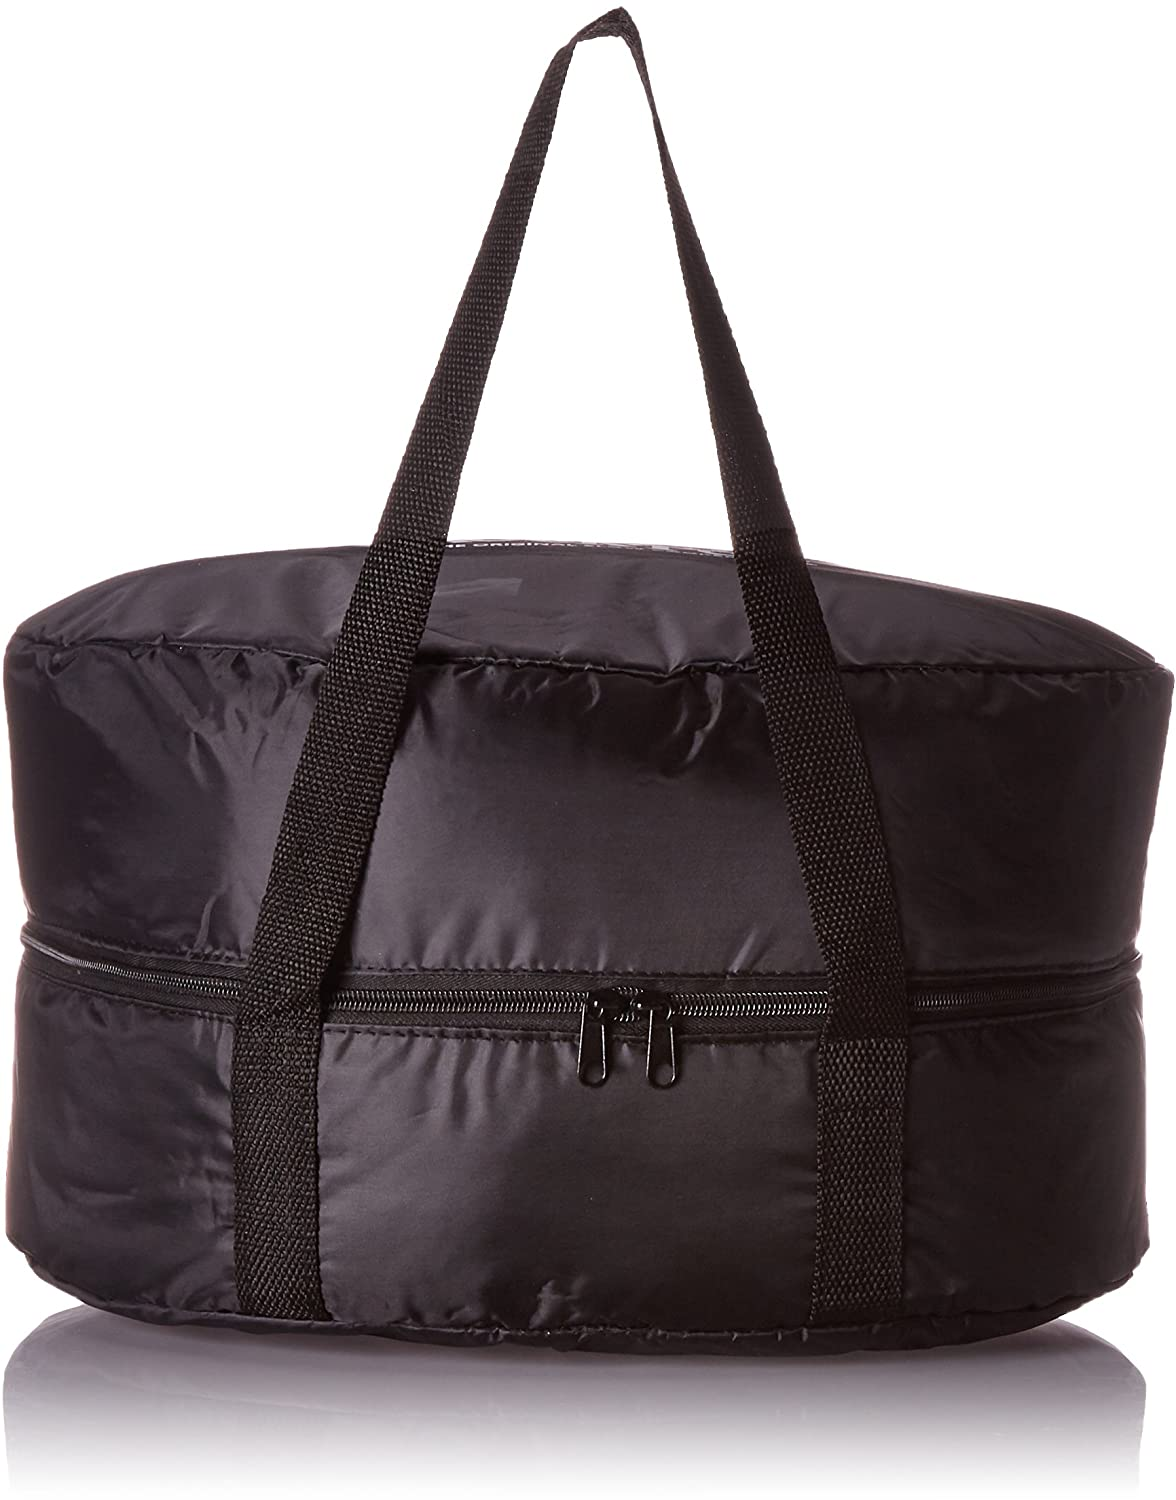 Crock-Pot Travel Bag for 4 - 7-Quart Slow Cookers, Black